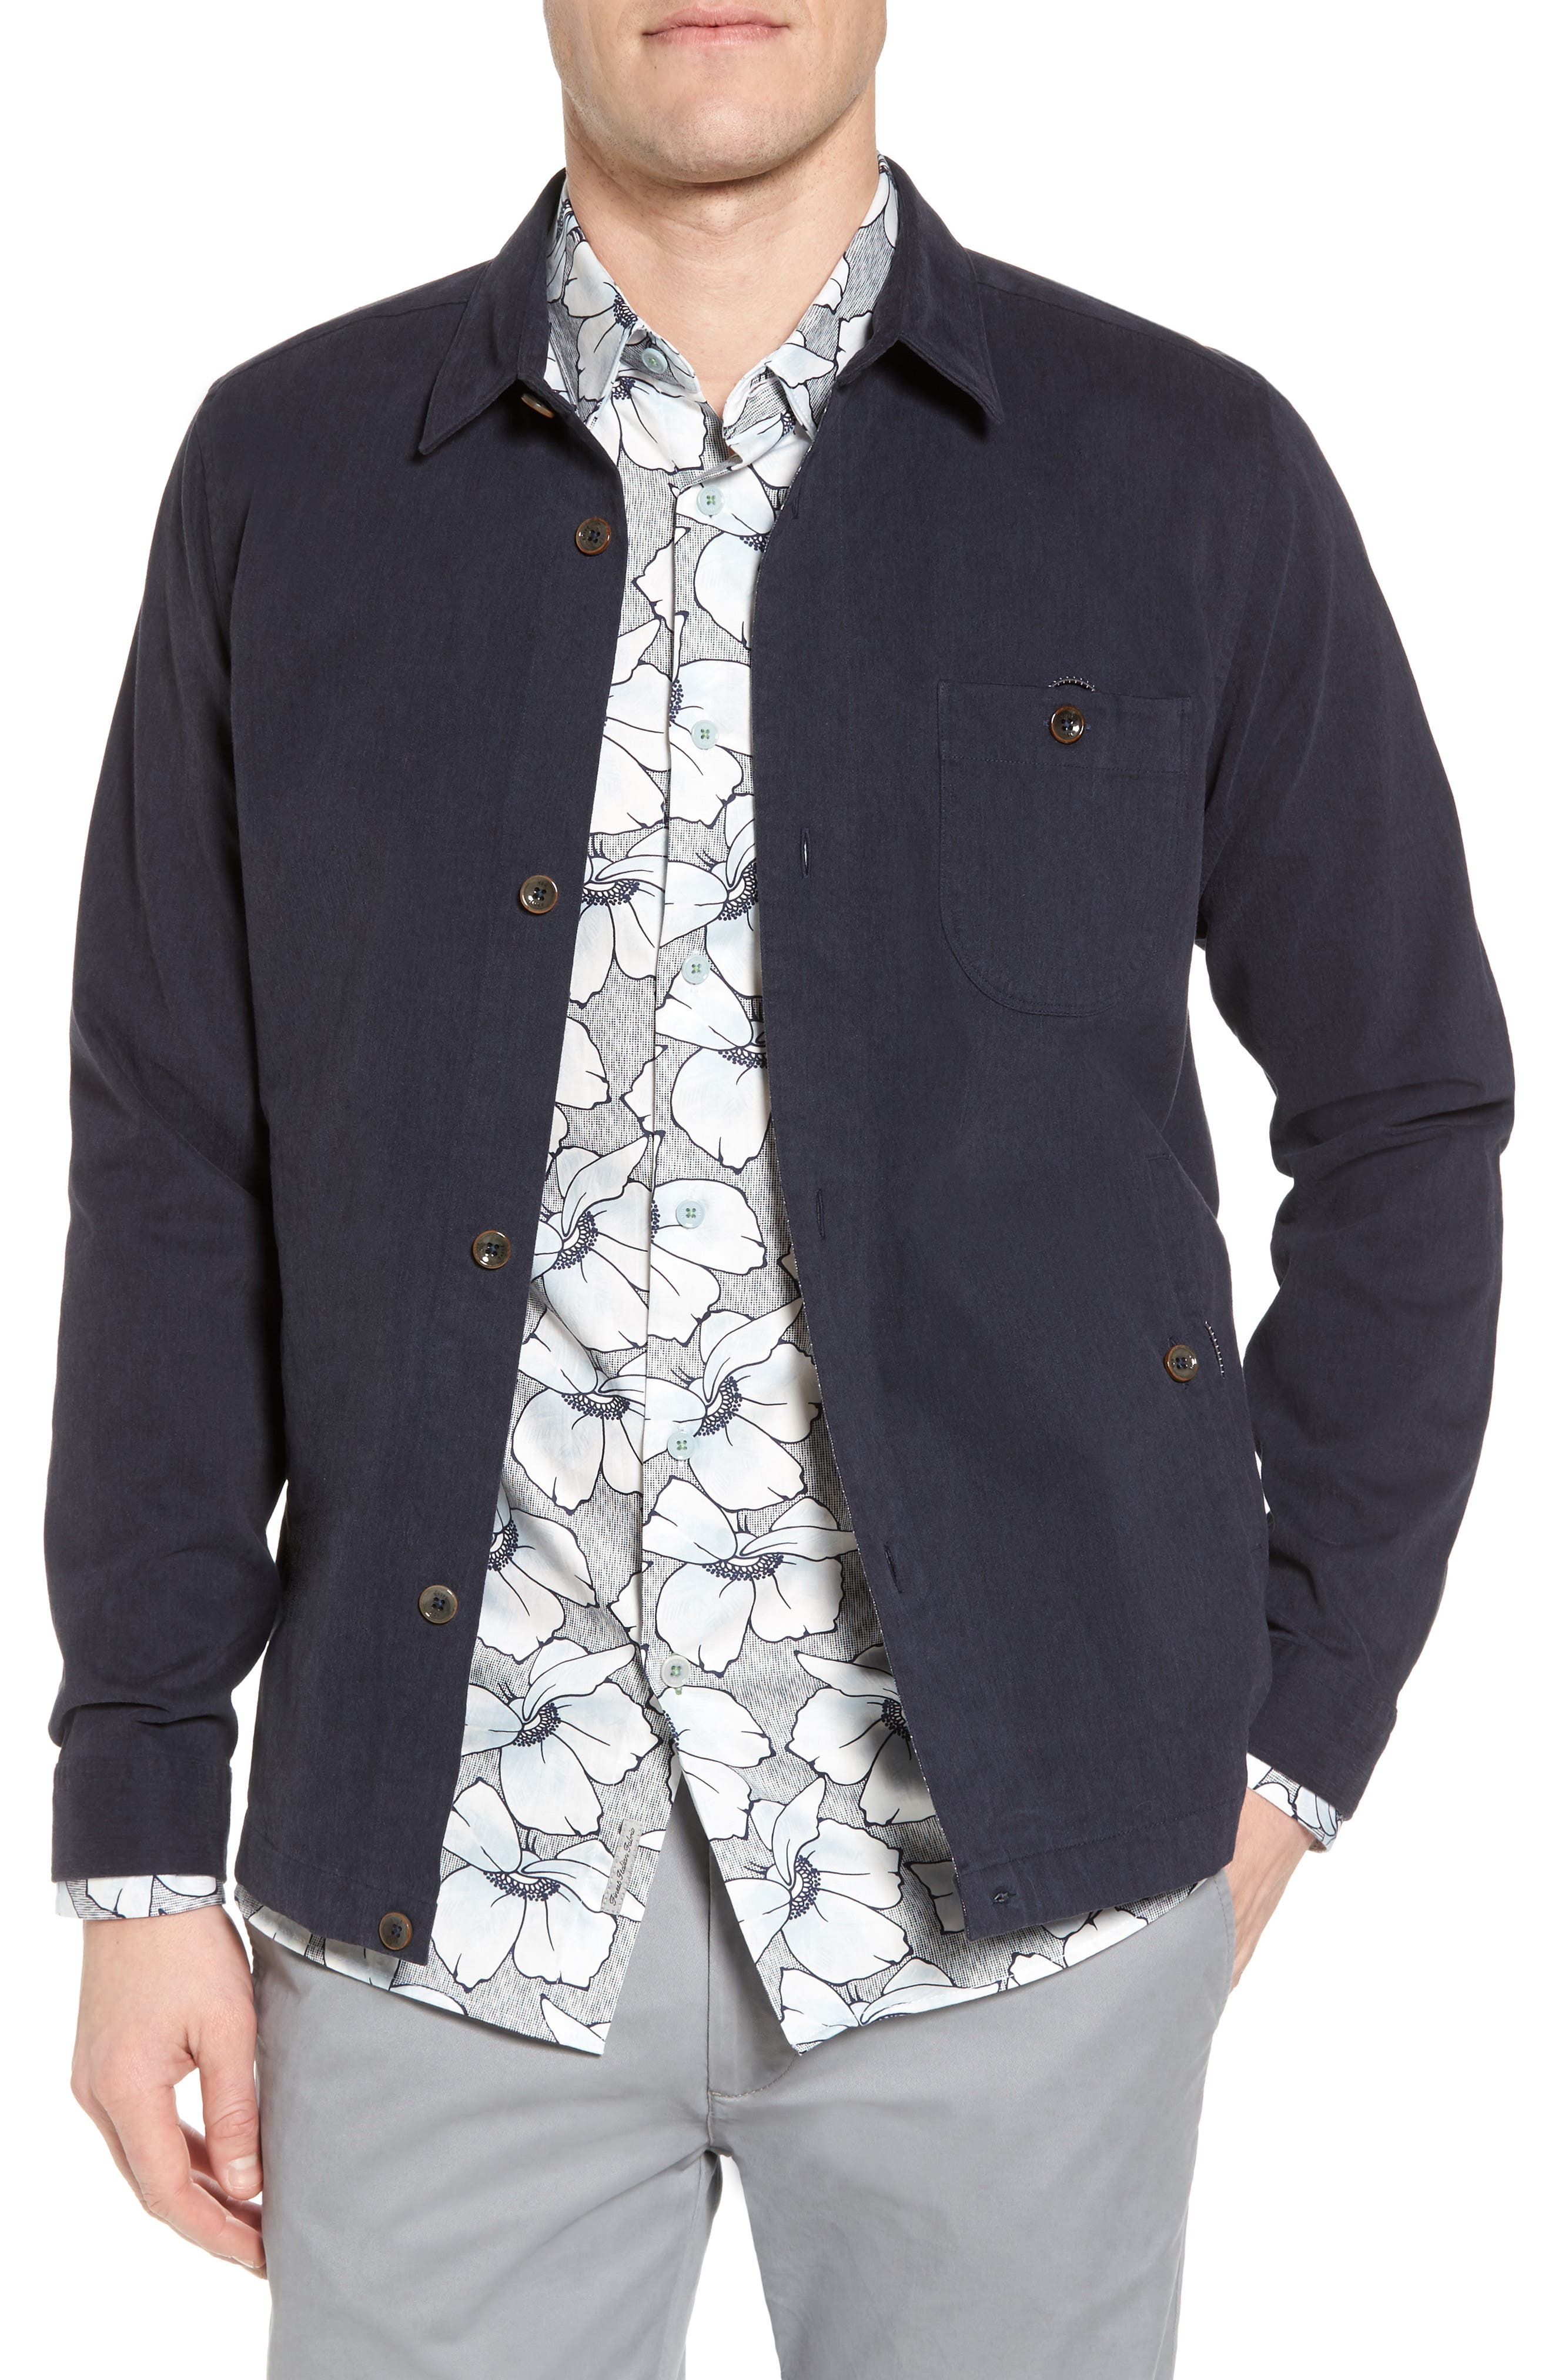 Keebord Shirt Jacket,                             Main thumbnail 1, color,                             Navy